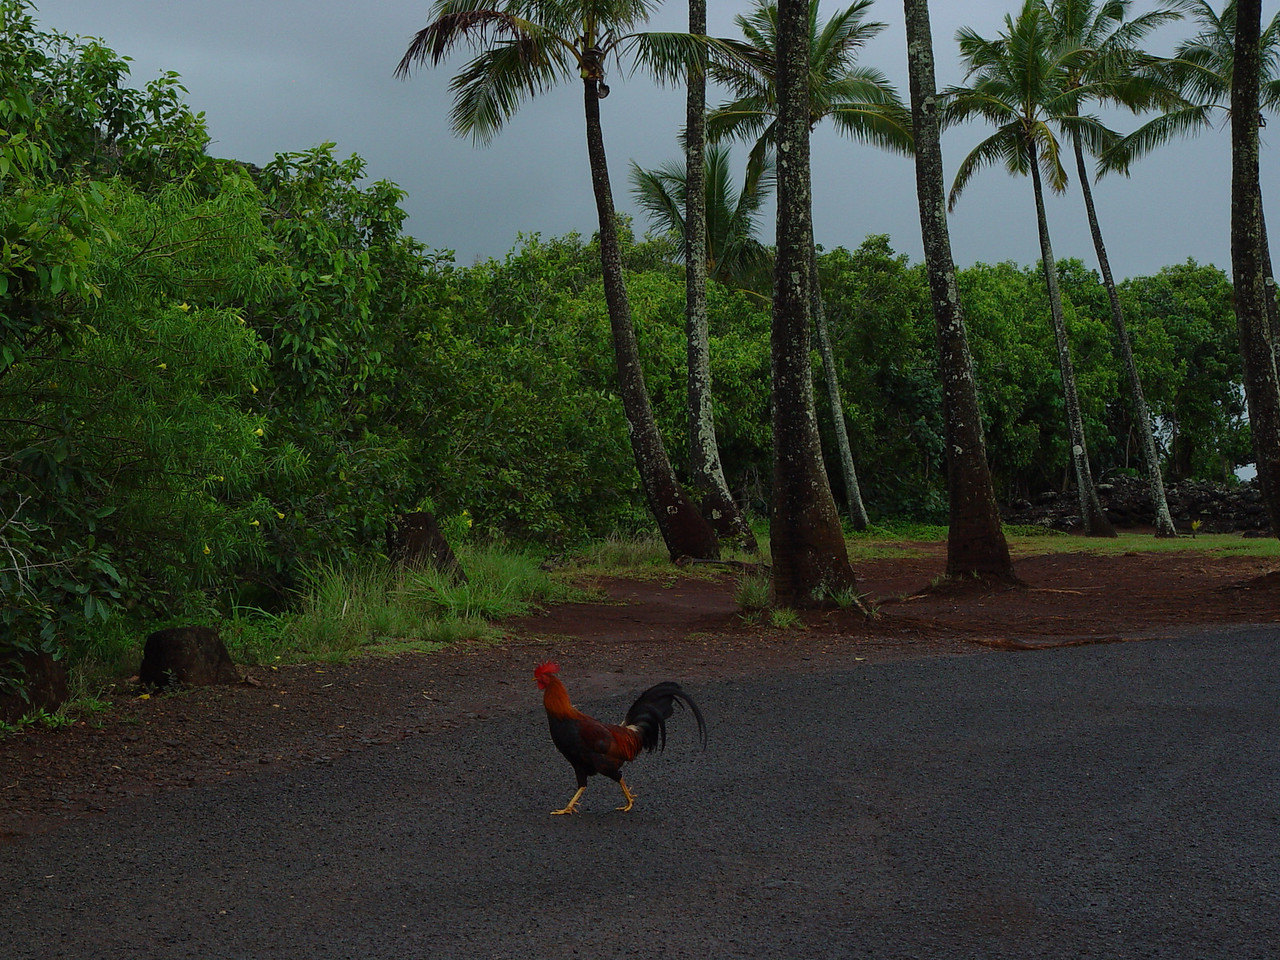 The beautiful rooster icaught our attention as he pranced about the parking lot as though he owned it!